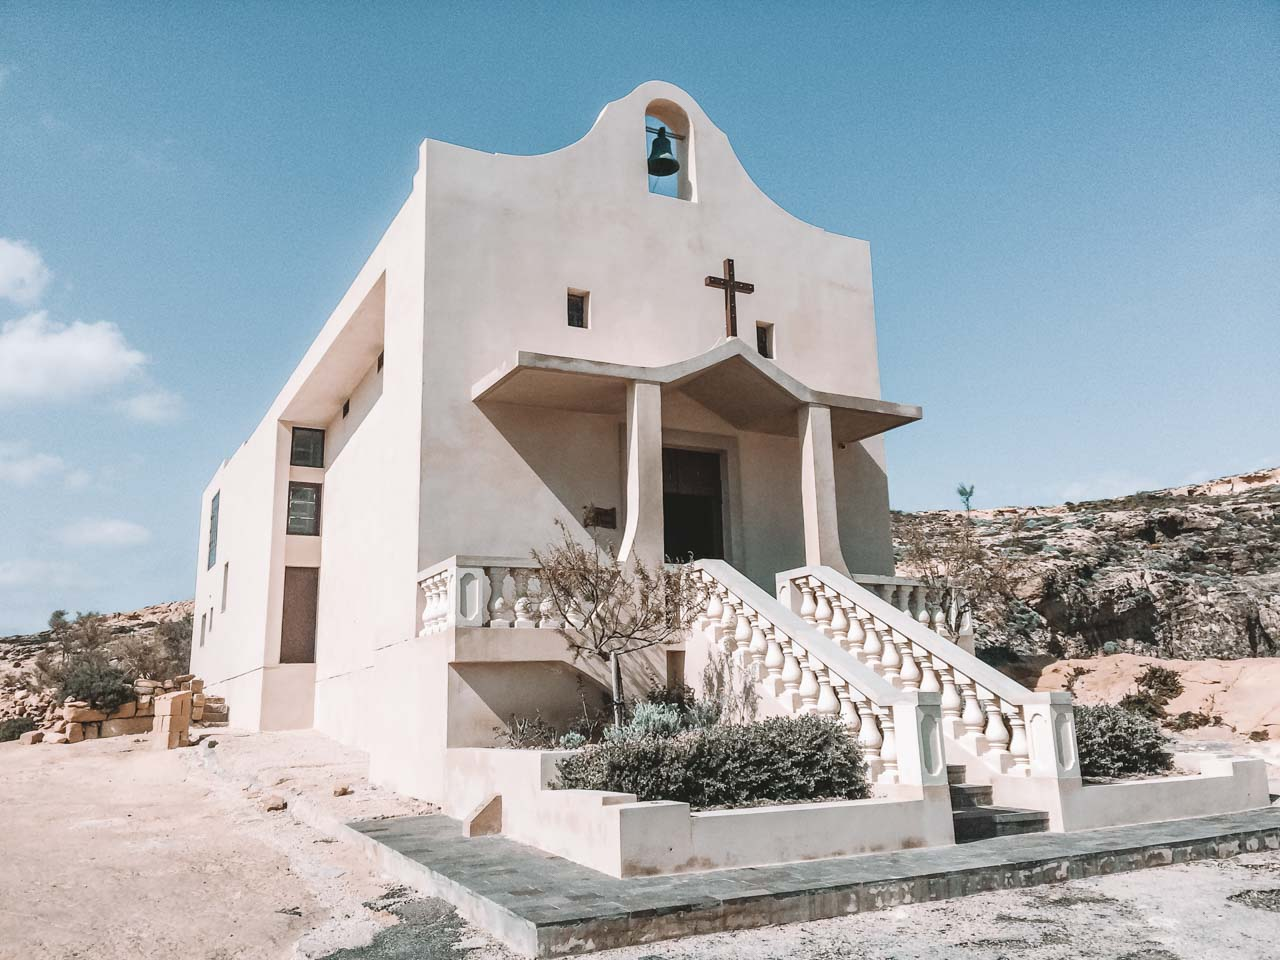 A traditional church next to the Azure Window, Gozo